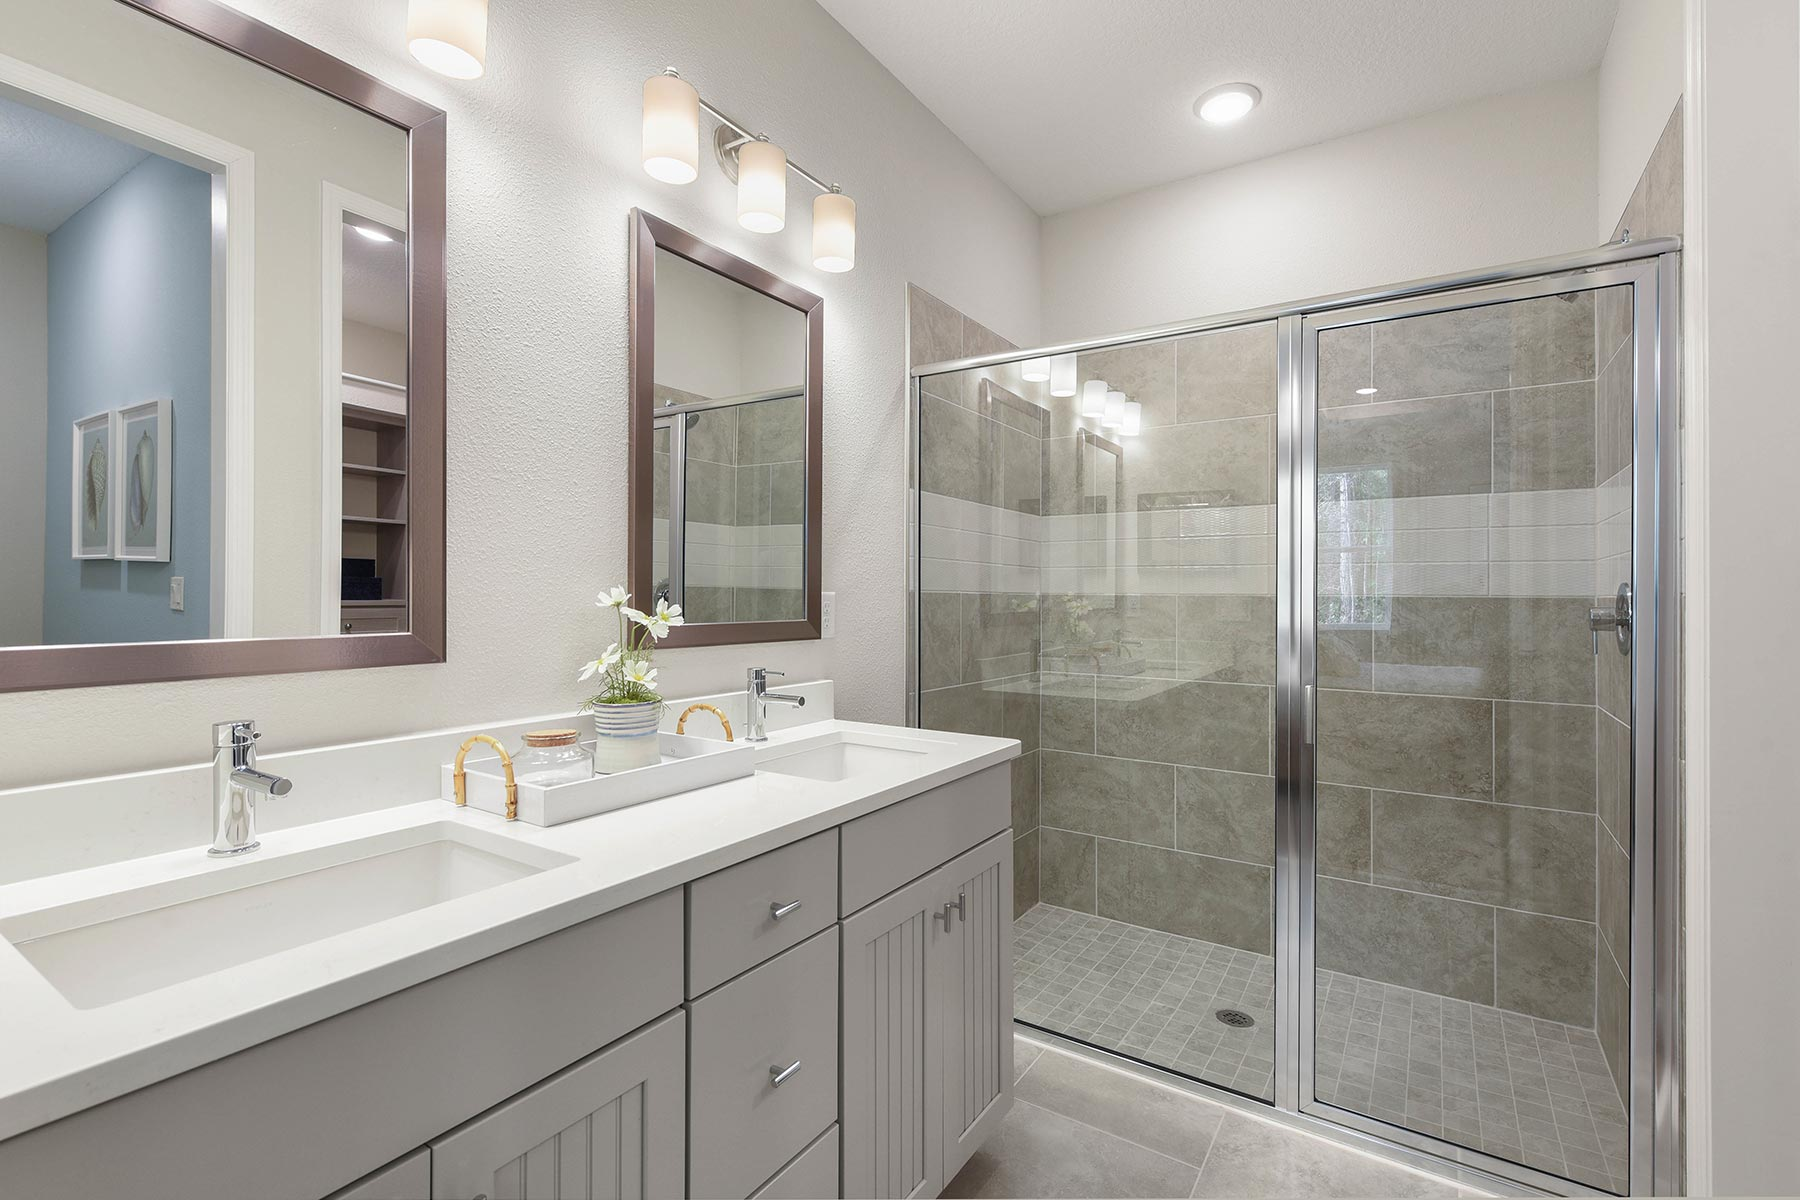 Ocean Plan Bathroom_Master Bath at RiverTown - WaterSong in St. Johns Florida by Mattamy Homes